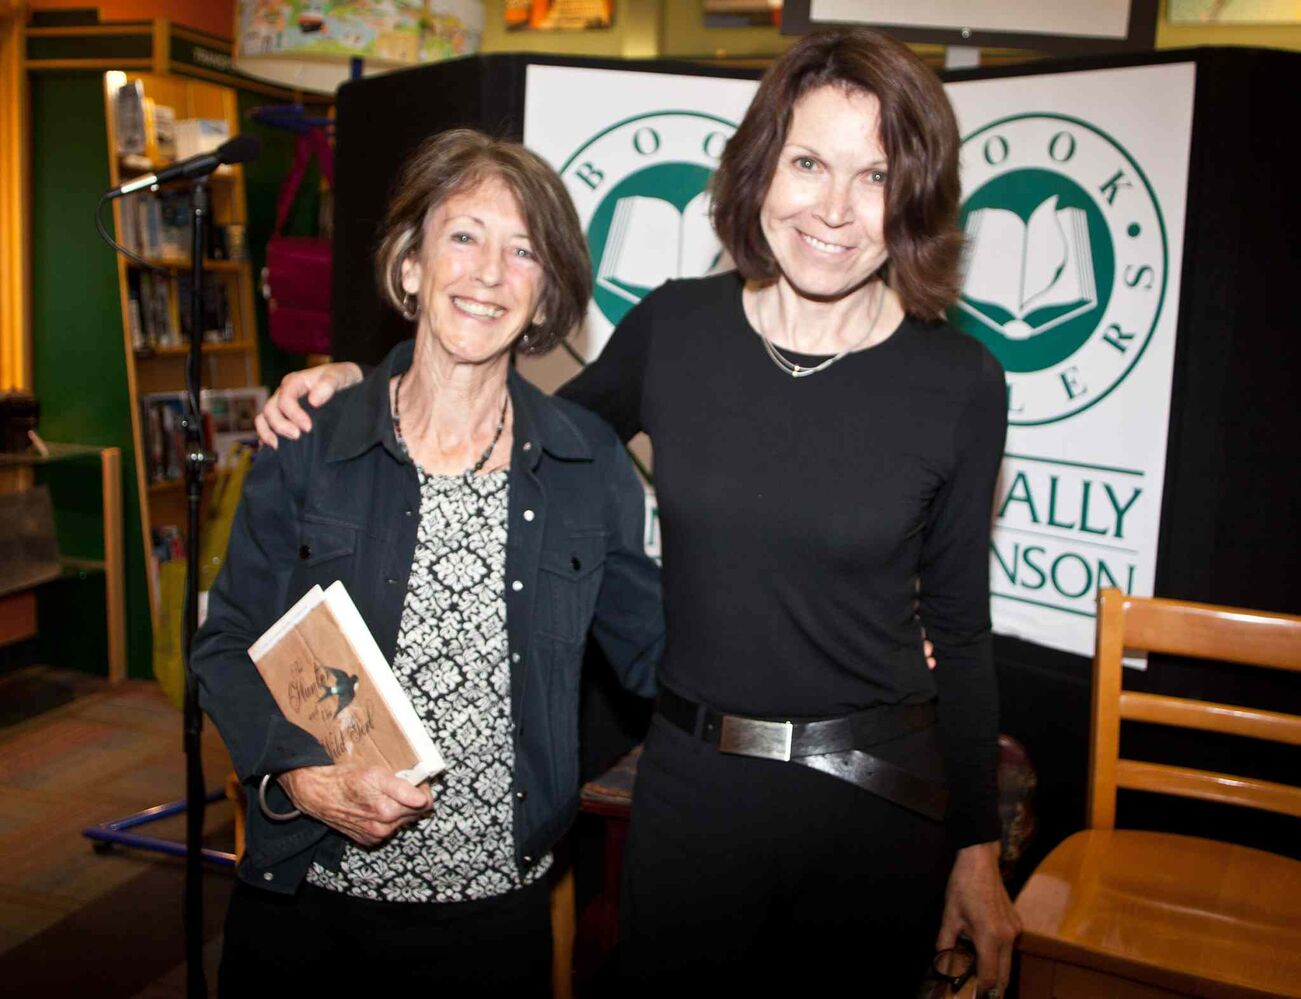 It was a two-for-one night for book signings at McNally Robinson Booksellers on Sept. 8, 2015. Pictured, from left, are authors Pauline Holdstock and Margaret Sweatman with Holdstock's The Hunter and the Wild Girl.  (JOHN JOHNSTON / WINNIPEG FREE PRESS)